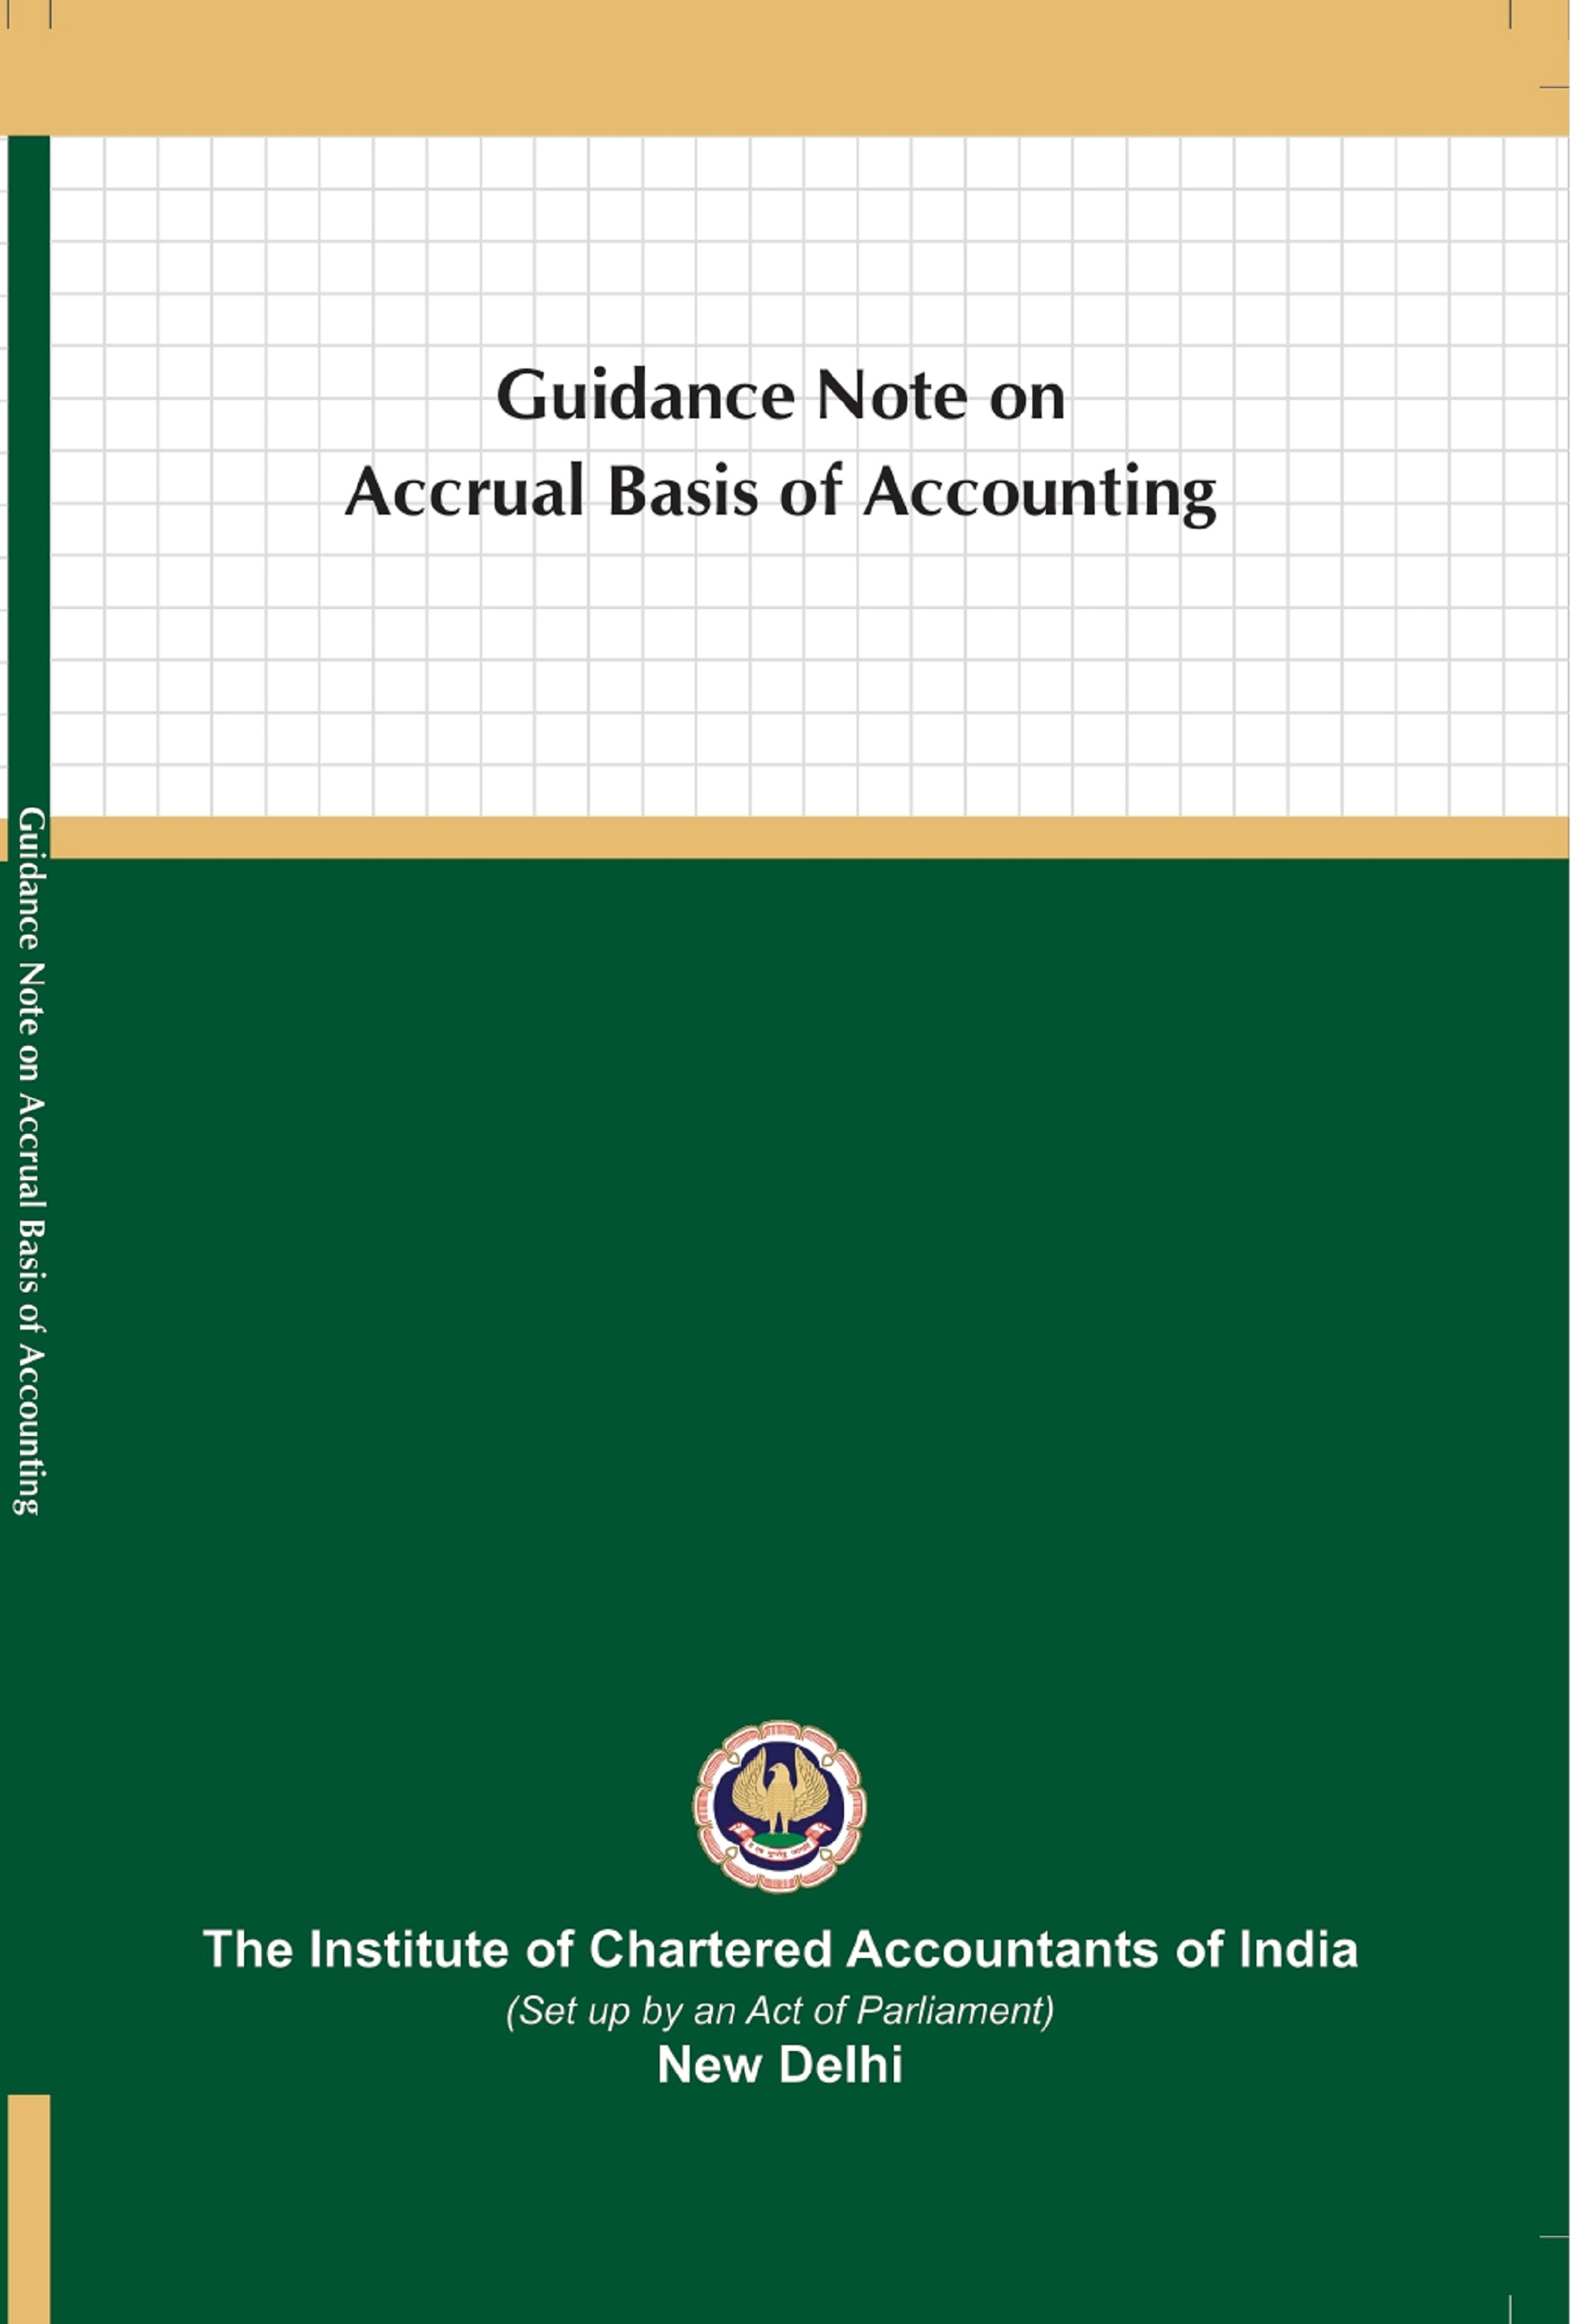 Guidance Note on Accrual Basis of Accounting (January, 2021)